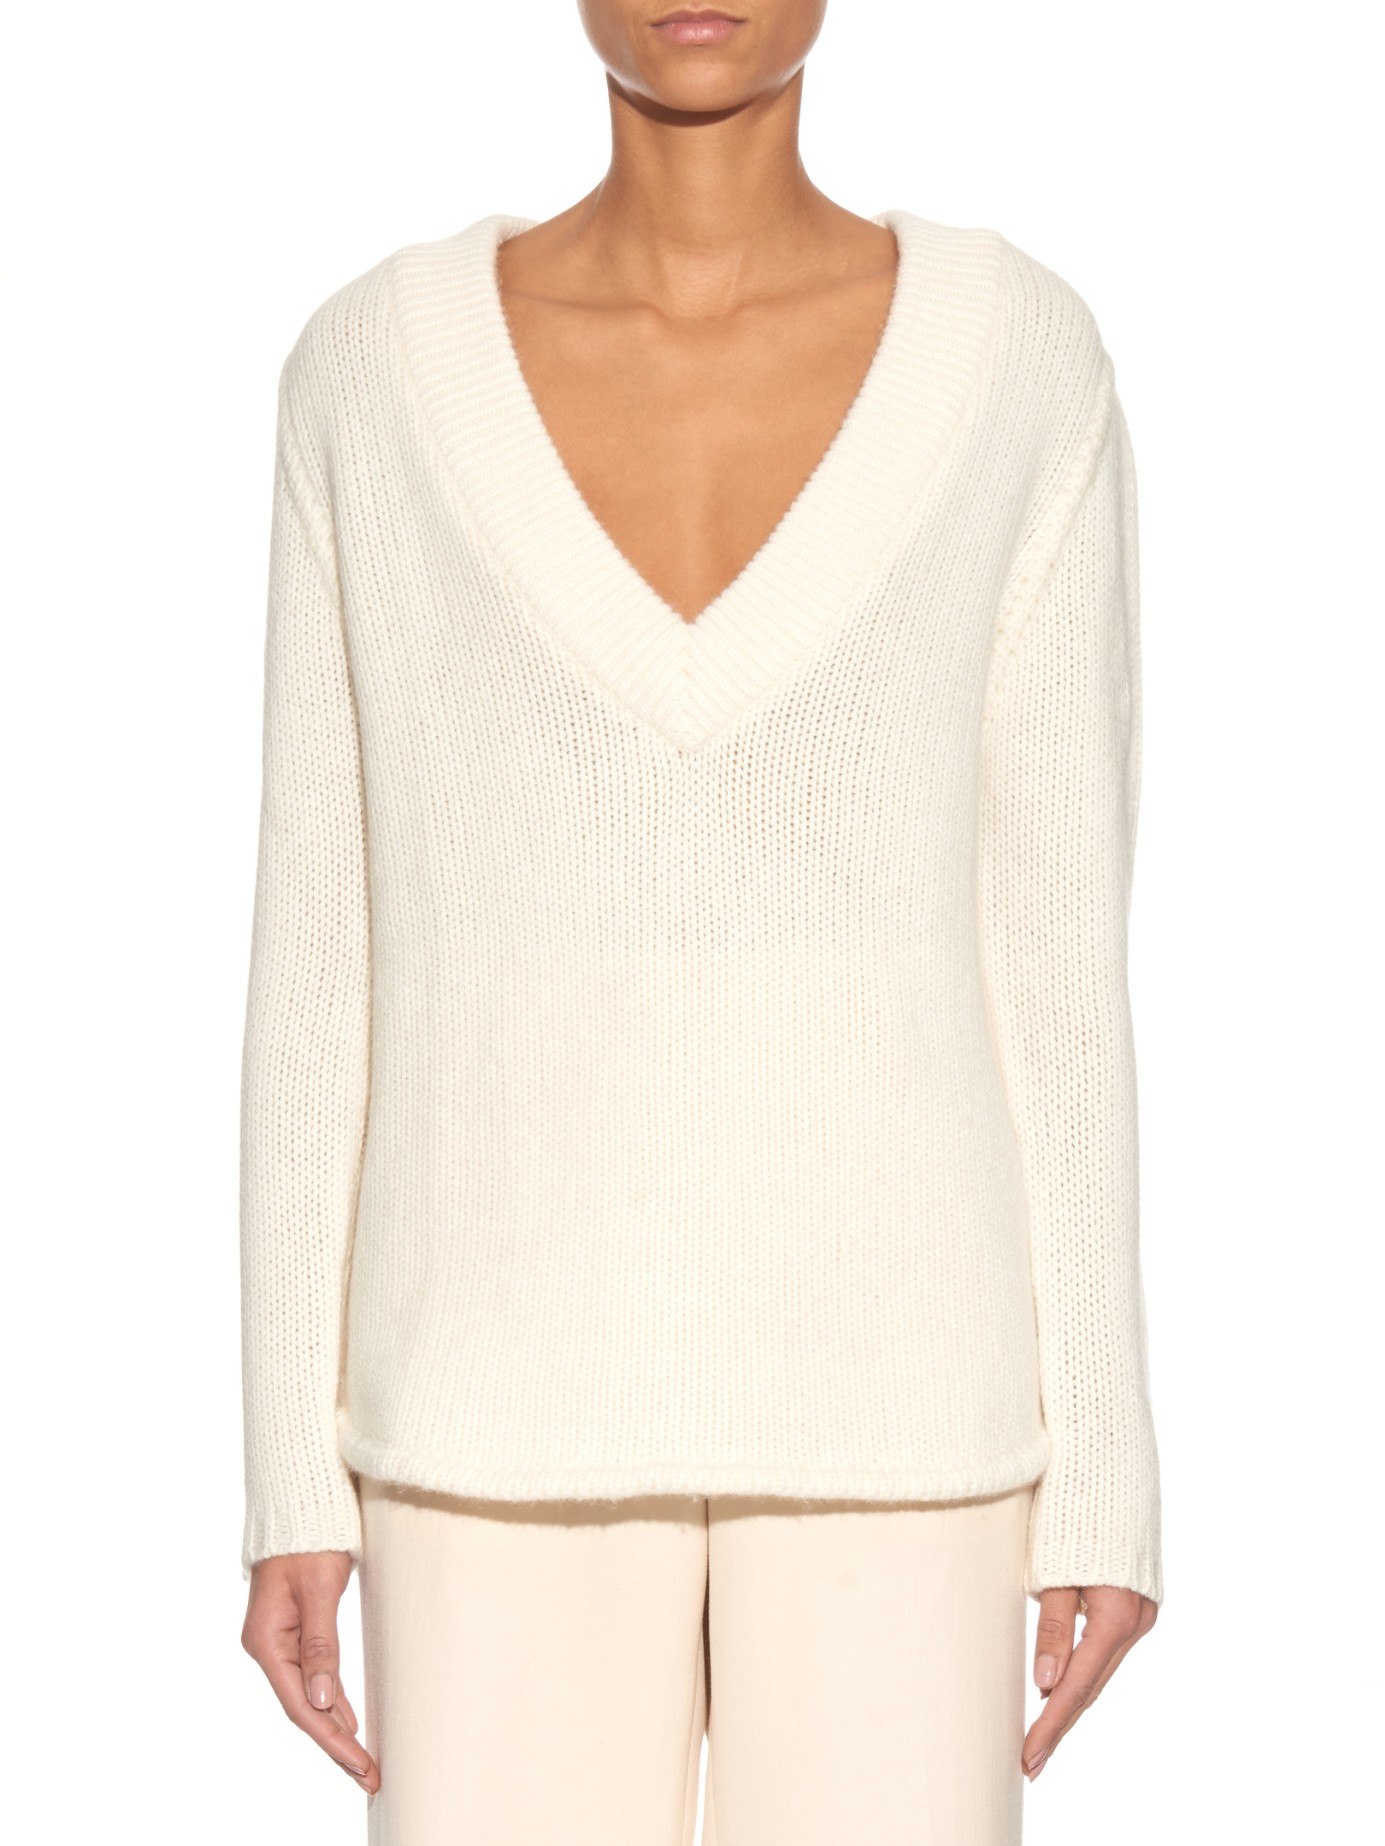 Denis colomb V-neck Cashmere Sweater in White | Lyst